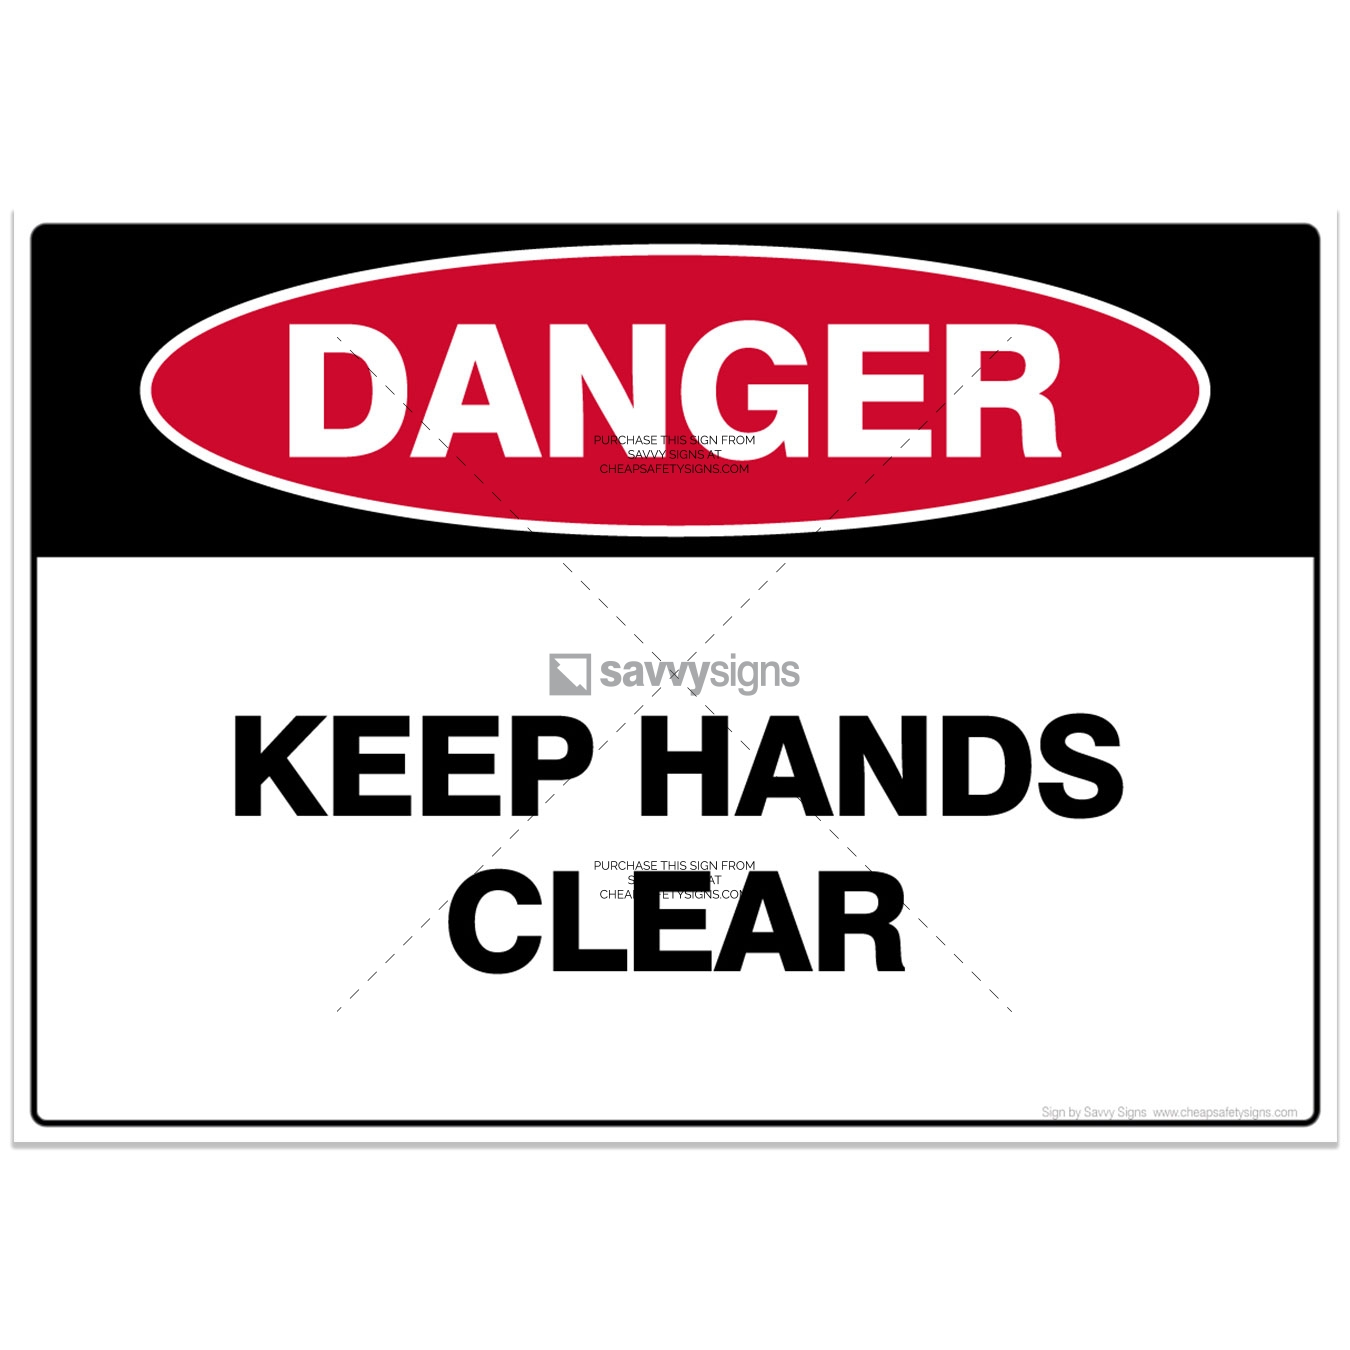 SSDAN3052-DANGER-Workplace-Safety-Signs_Savvy-Signs_v4.1